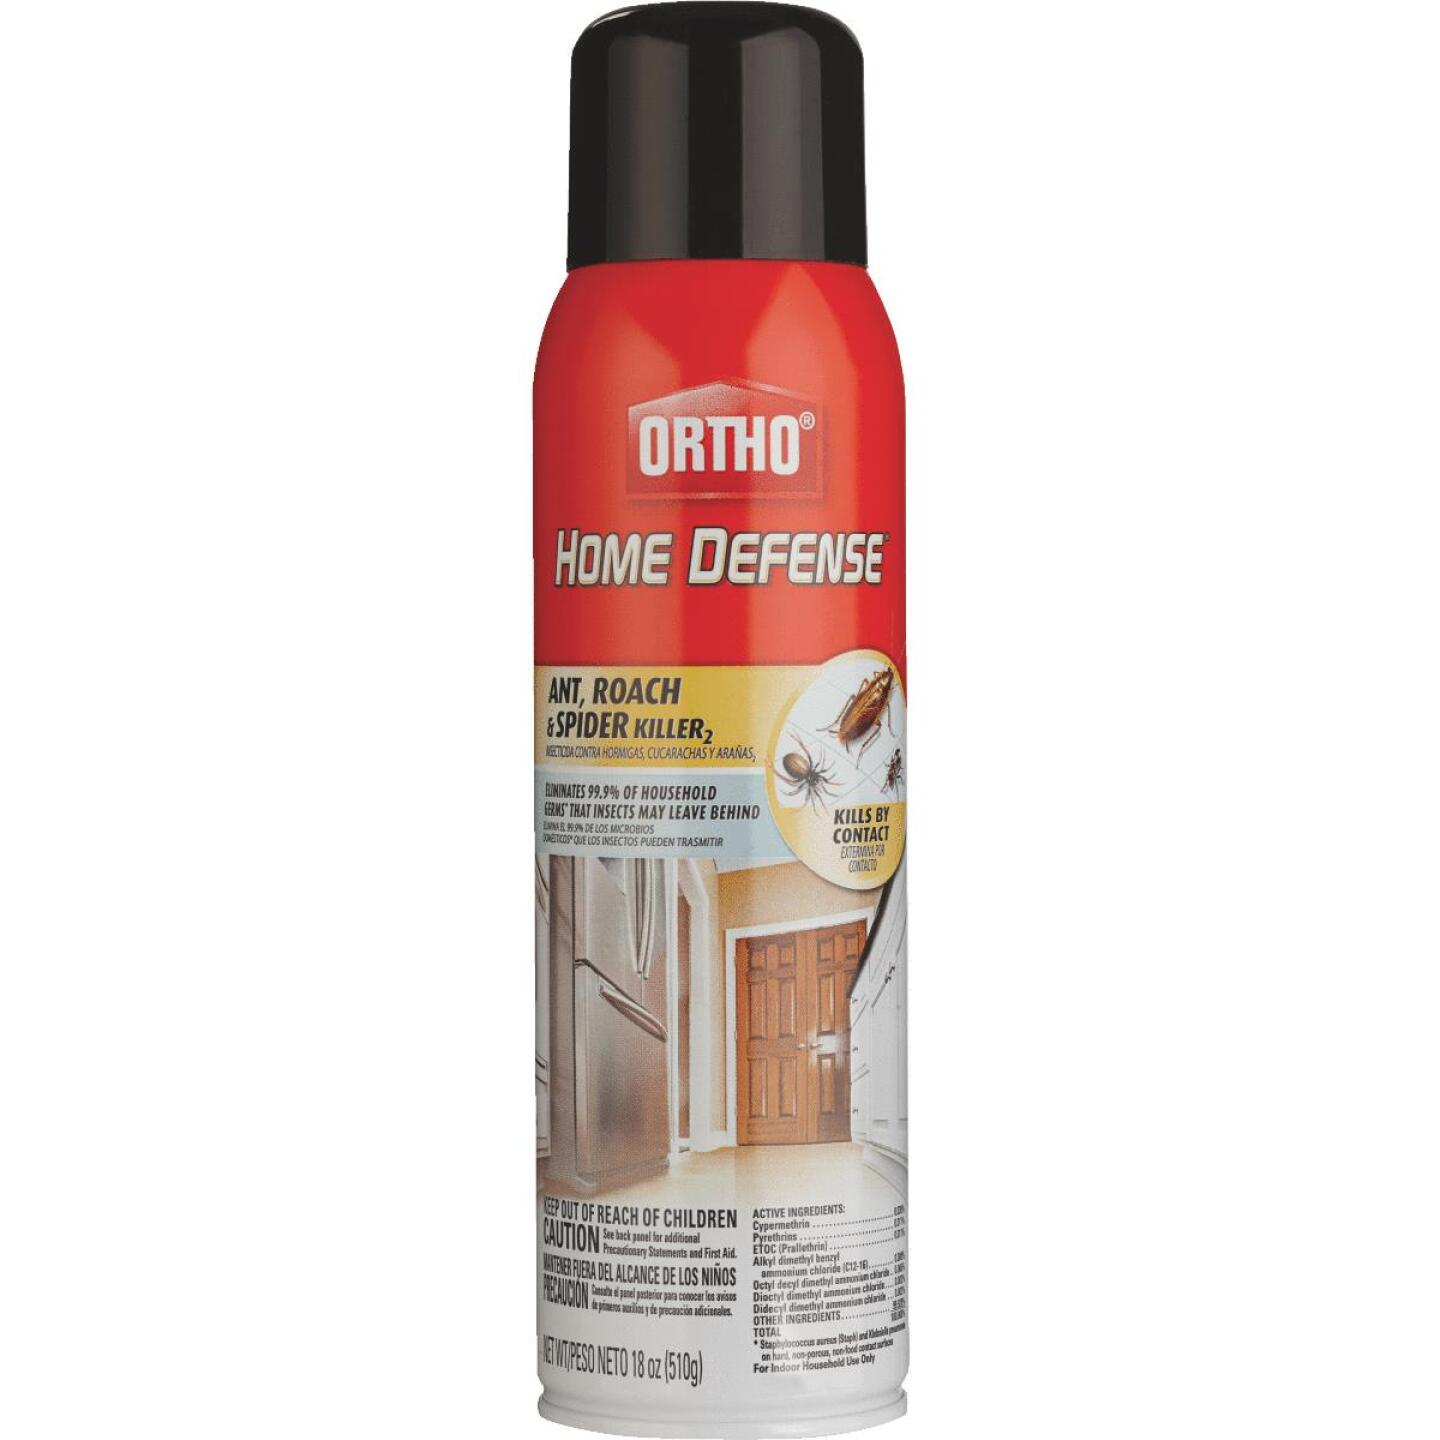 Ortho Home Defense 18 Oz. Aerosol Spray Ant & Roach Killer Image 2